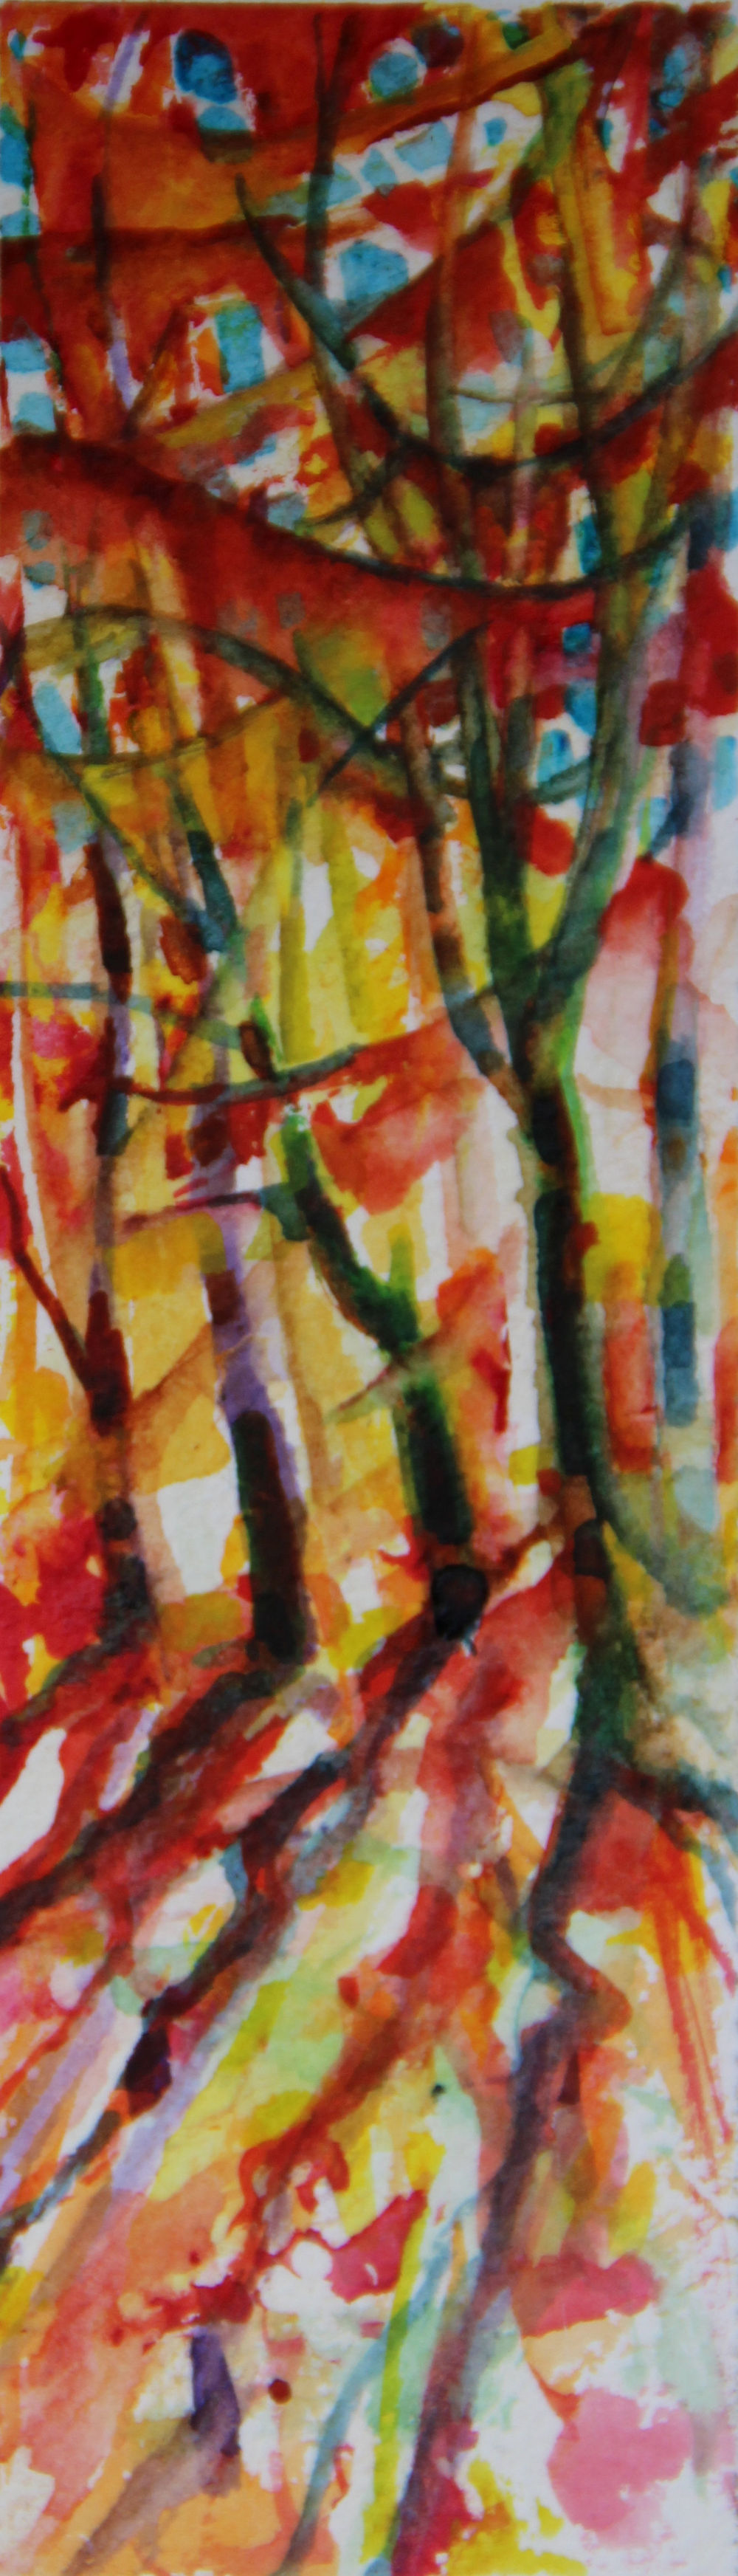 Autumn Forest Scene 07, about 6H x 2W inches watercolors on 140 lb cold pressed